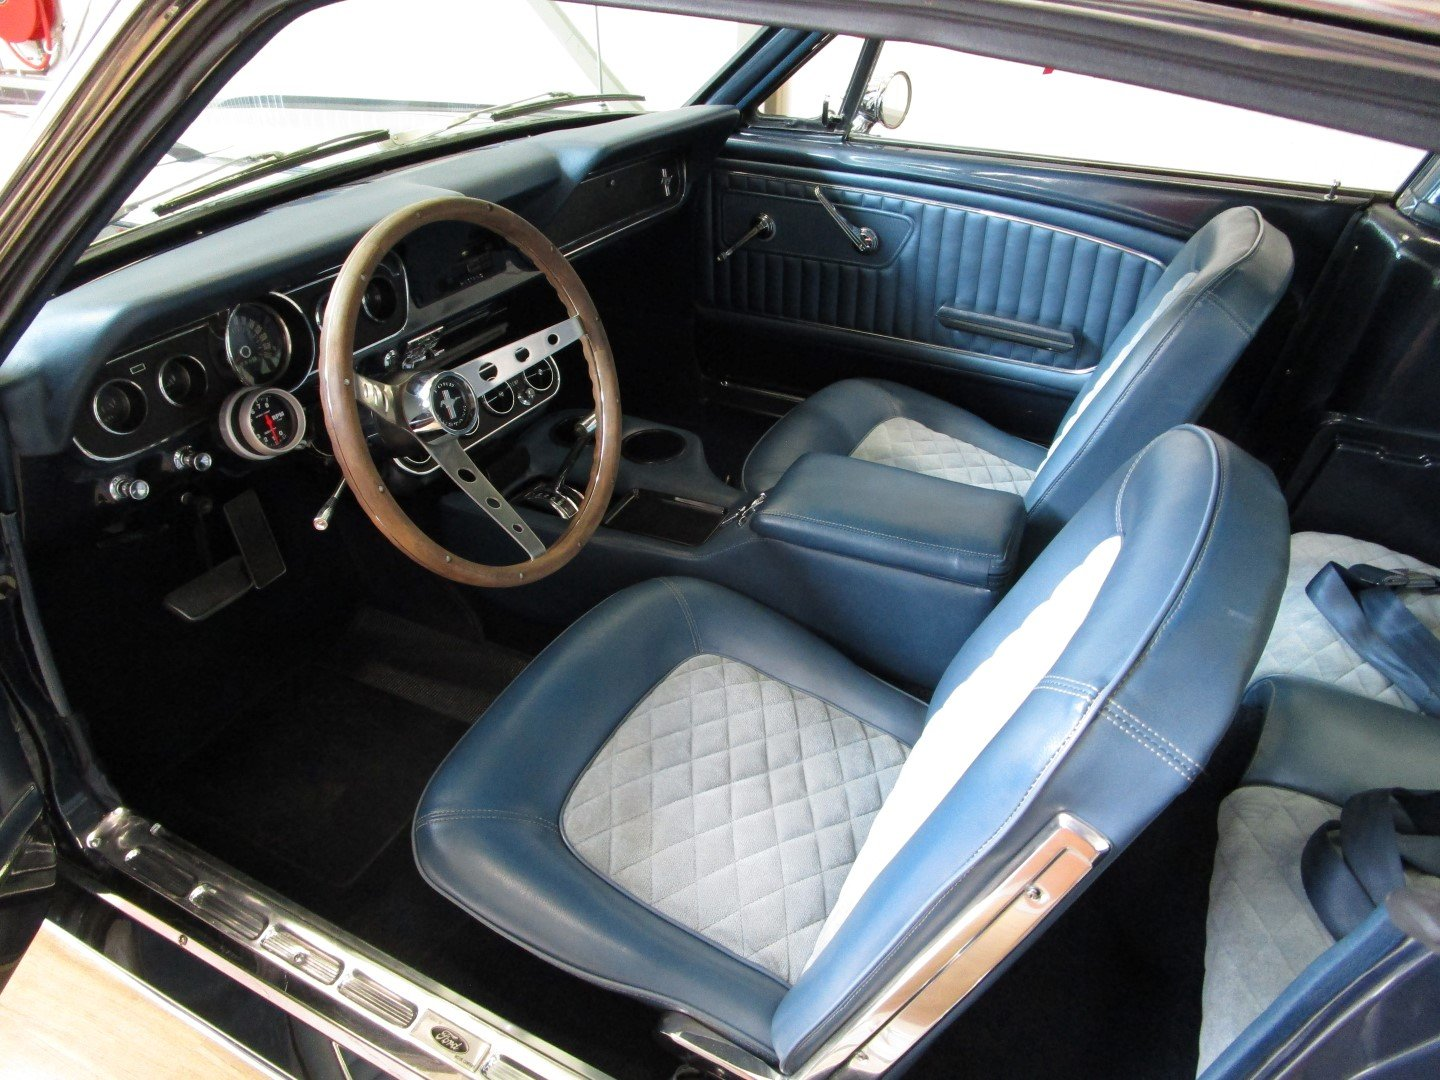 1965 Ford Mustang 289 V8 Fastback 2+2 For Sale (picture 4 of 6)